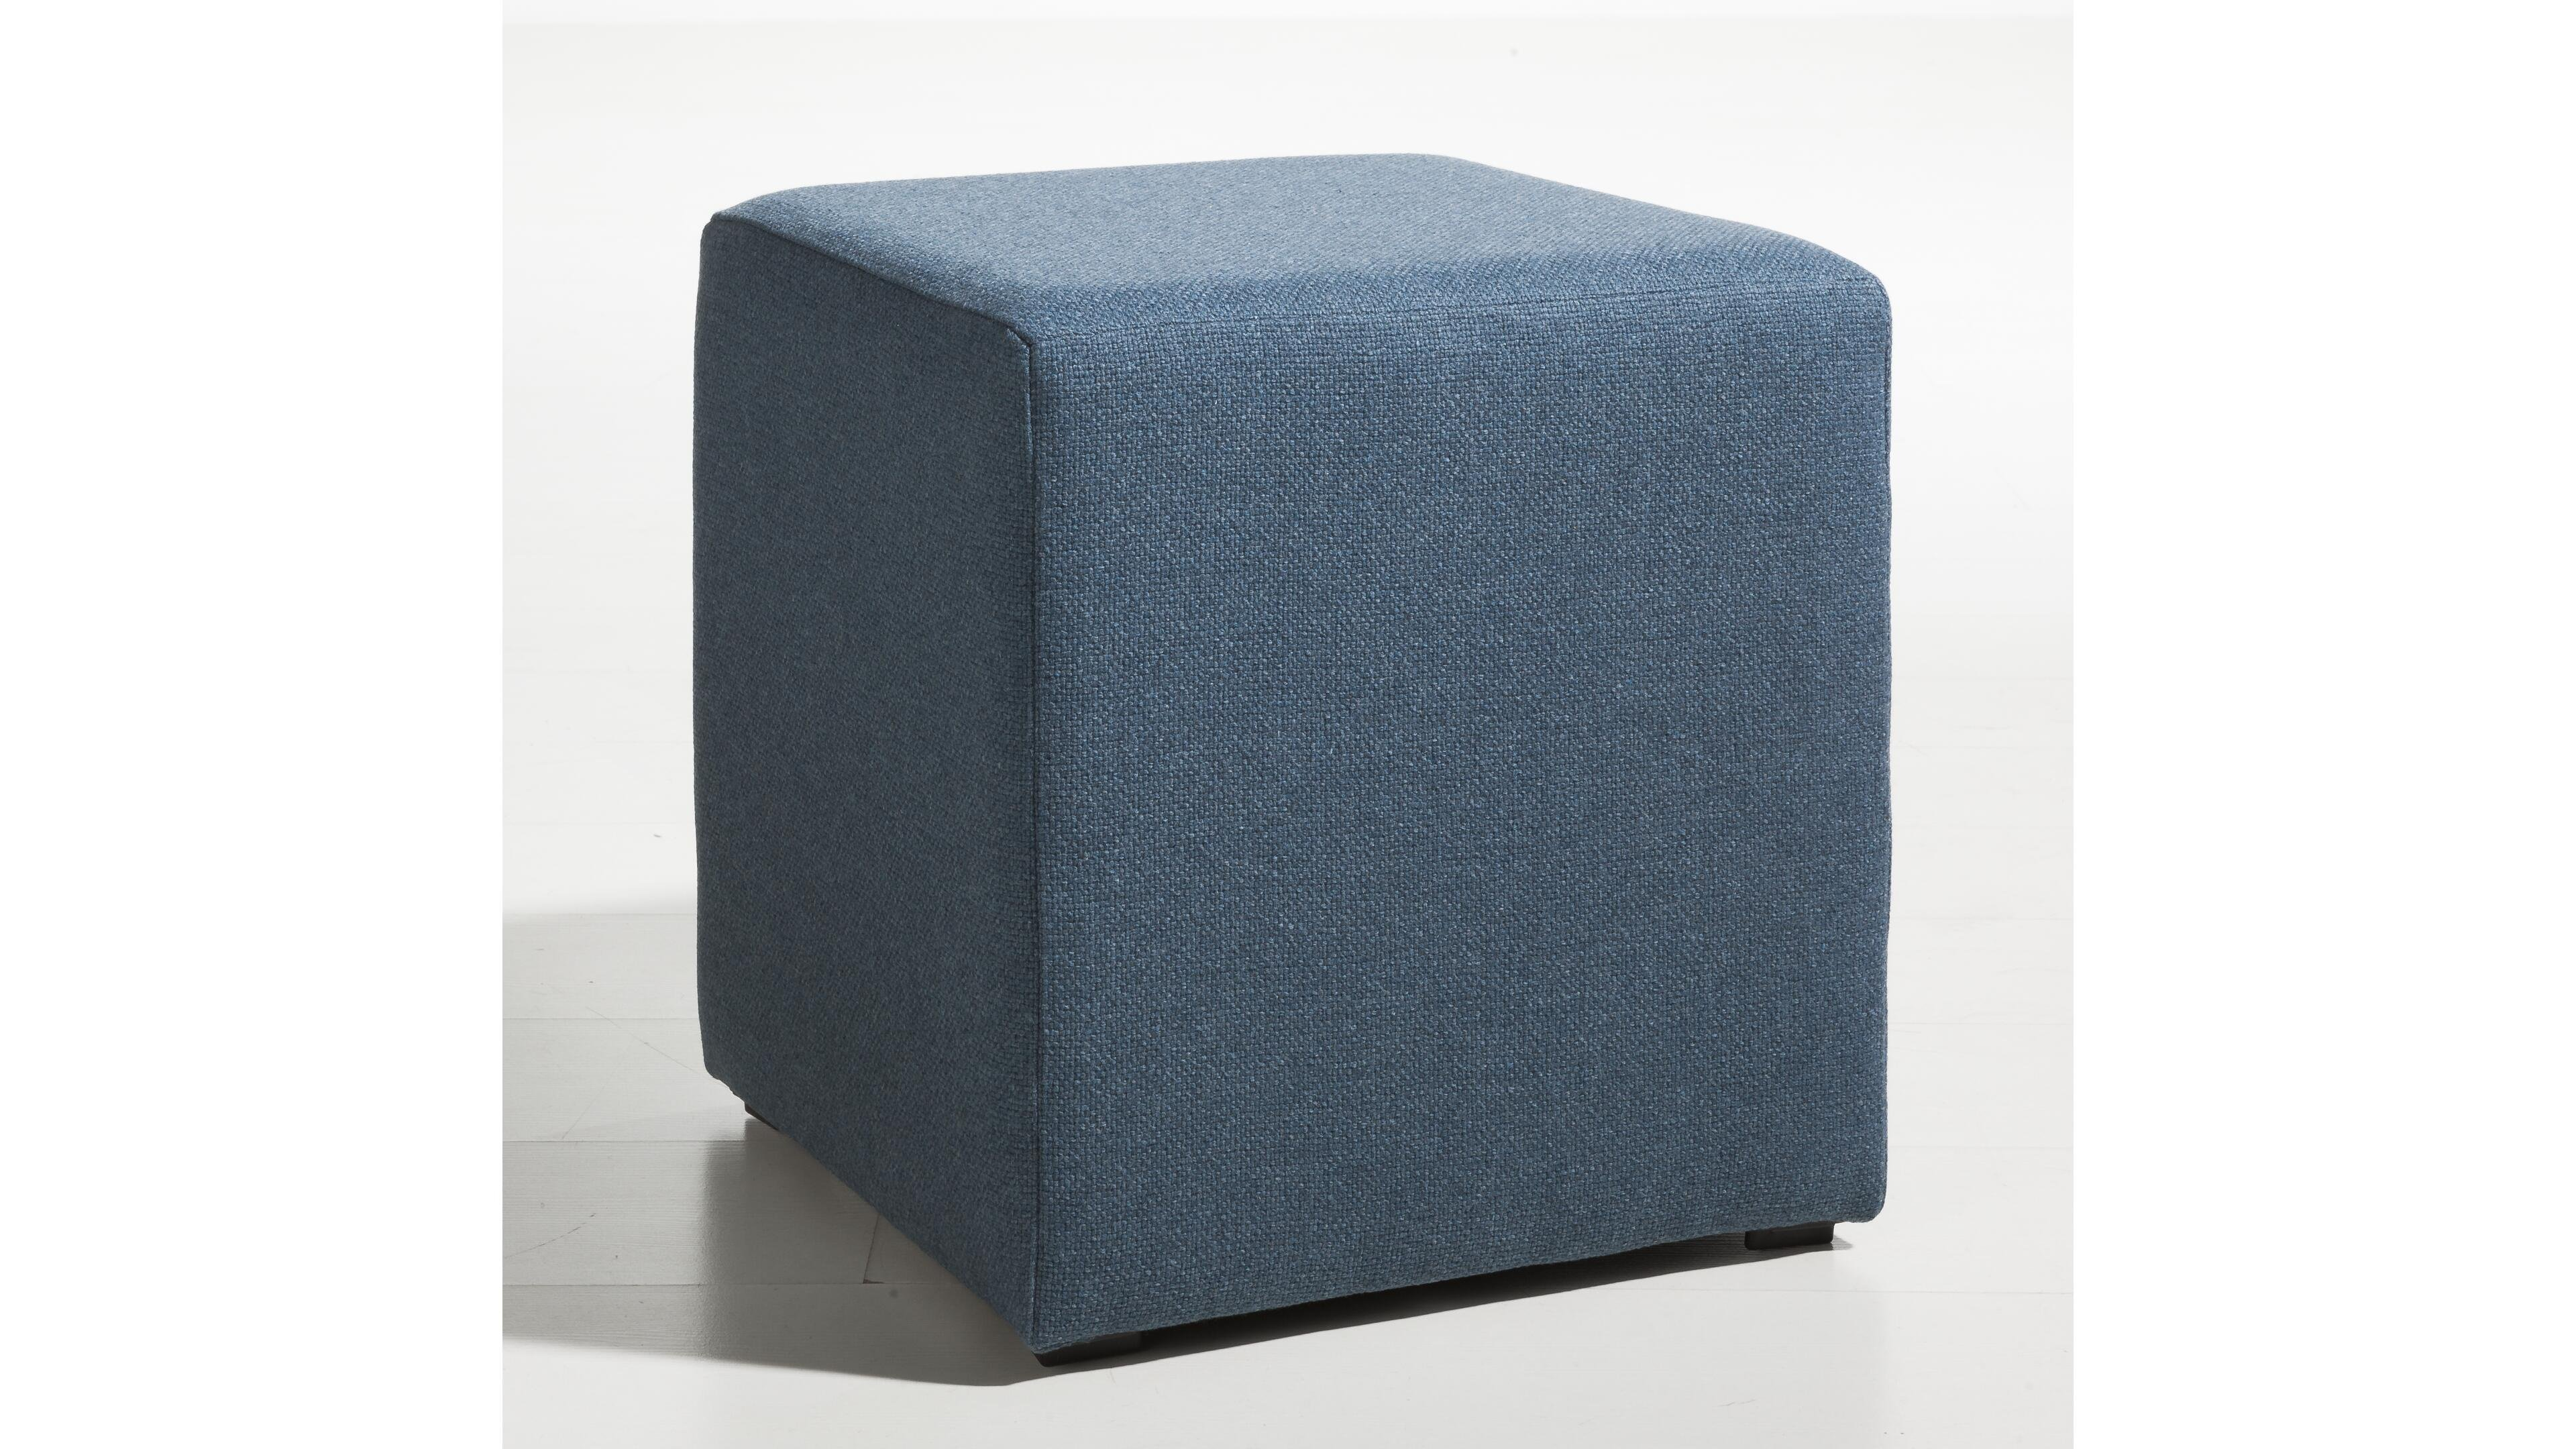 Hocker Hocker  Artic 10